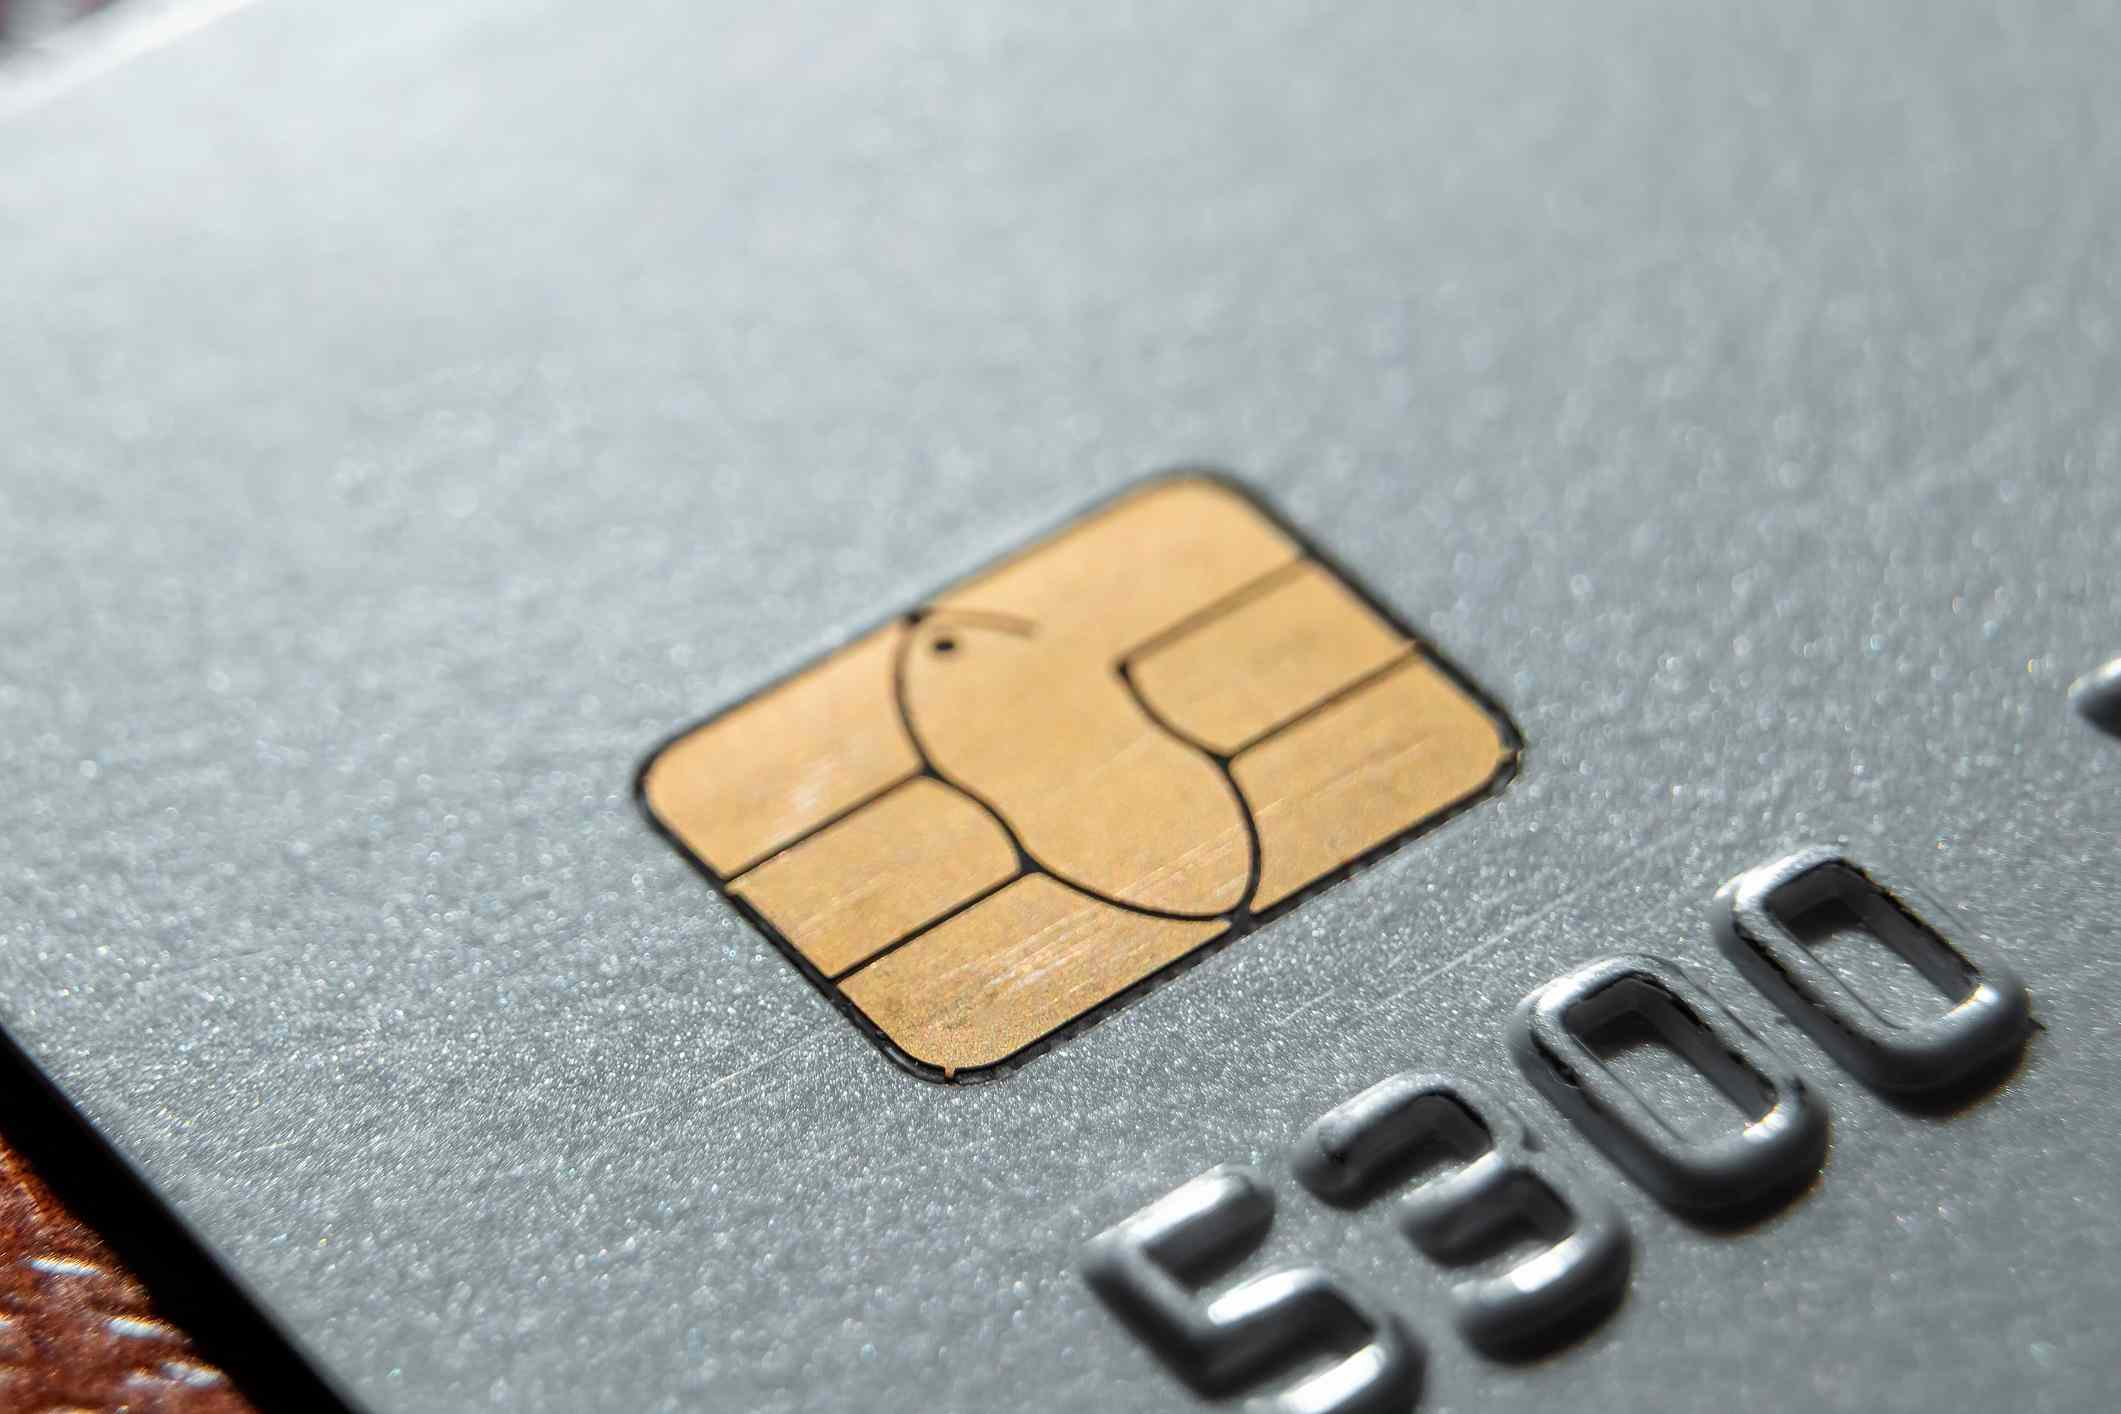 Micro credit card chip close-up, soft focus